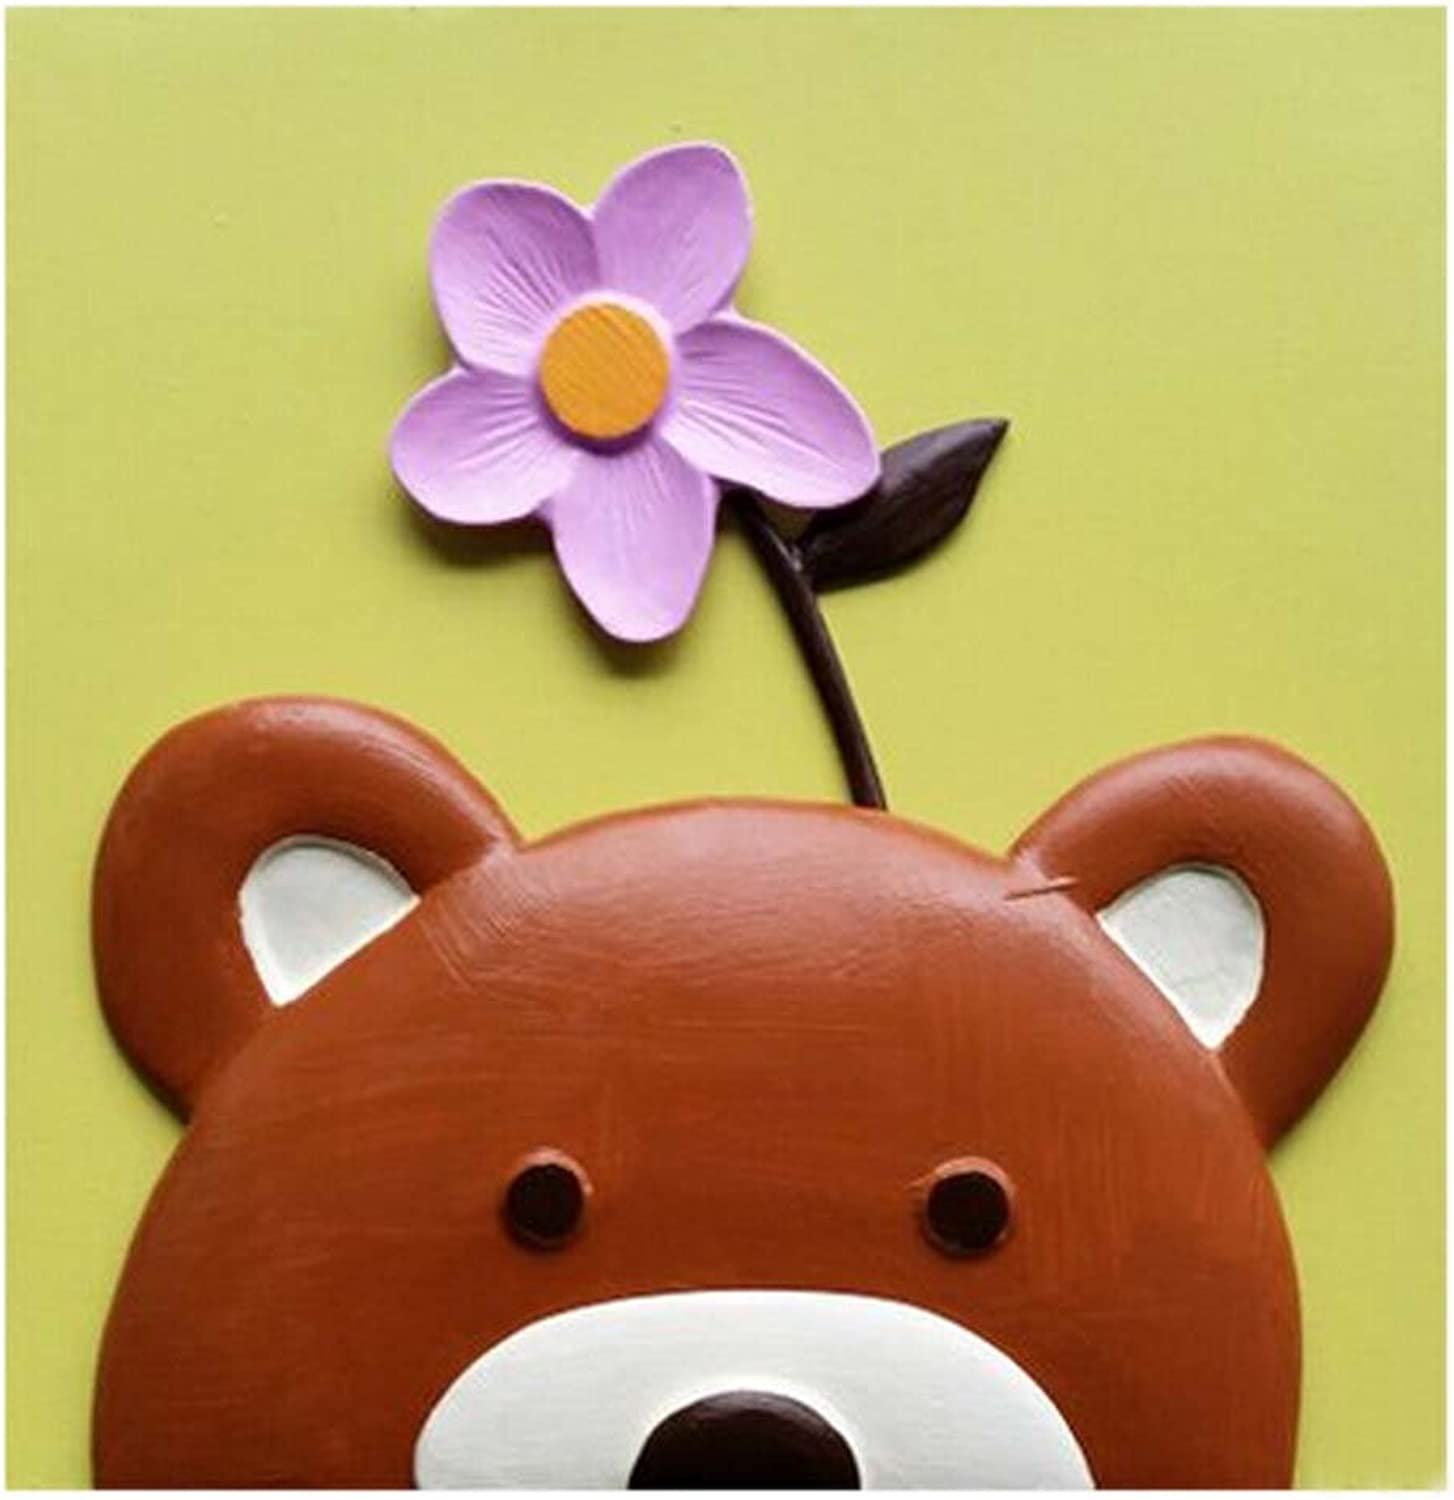 [Bear&Flower] 3D PaintByNumber Kits DIY Painting Crafts for Kids Over 5Y